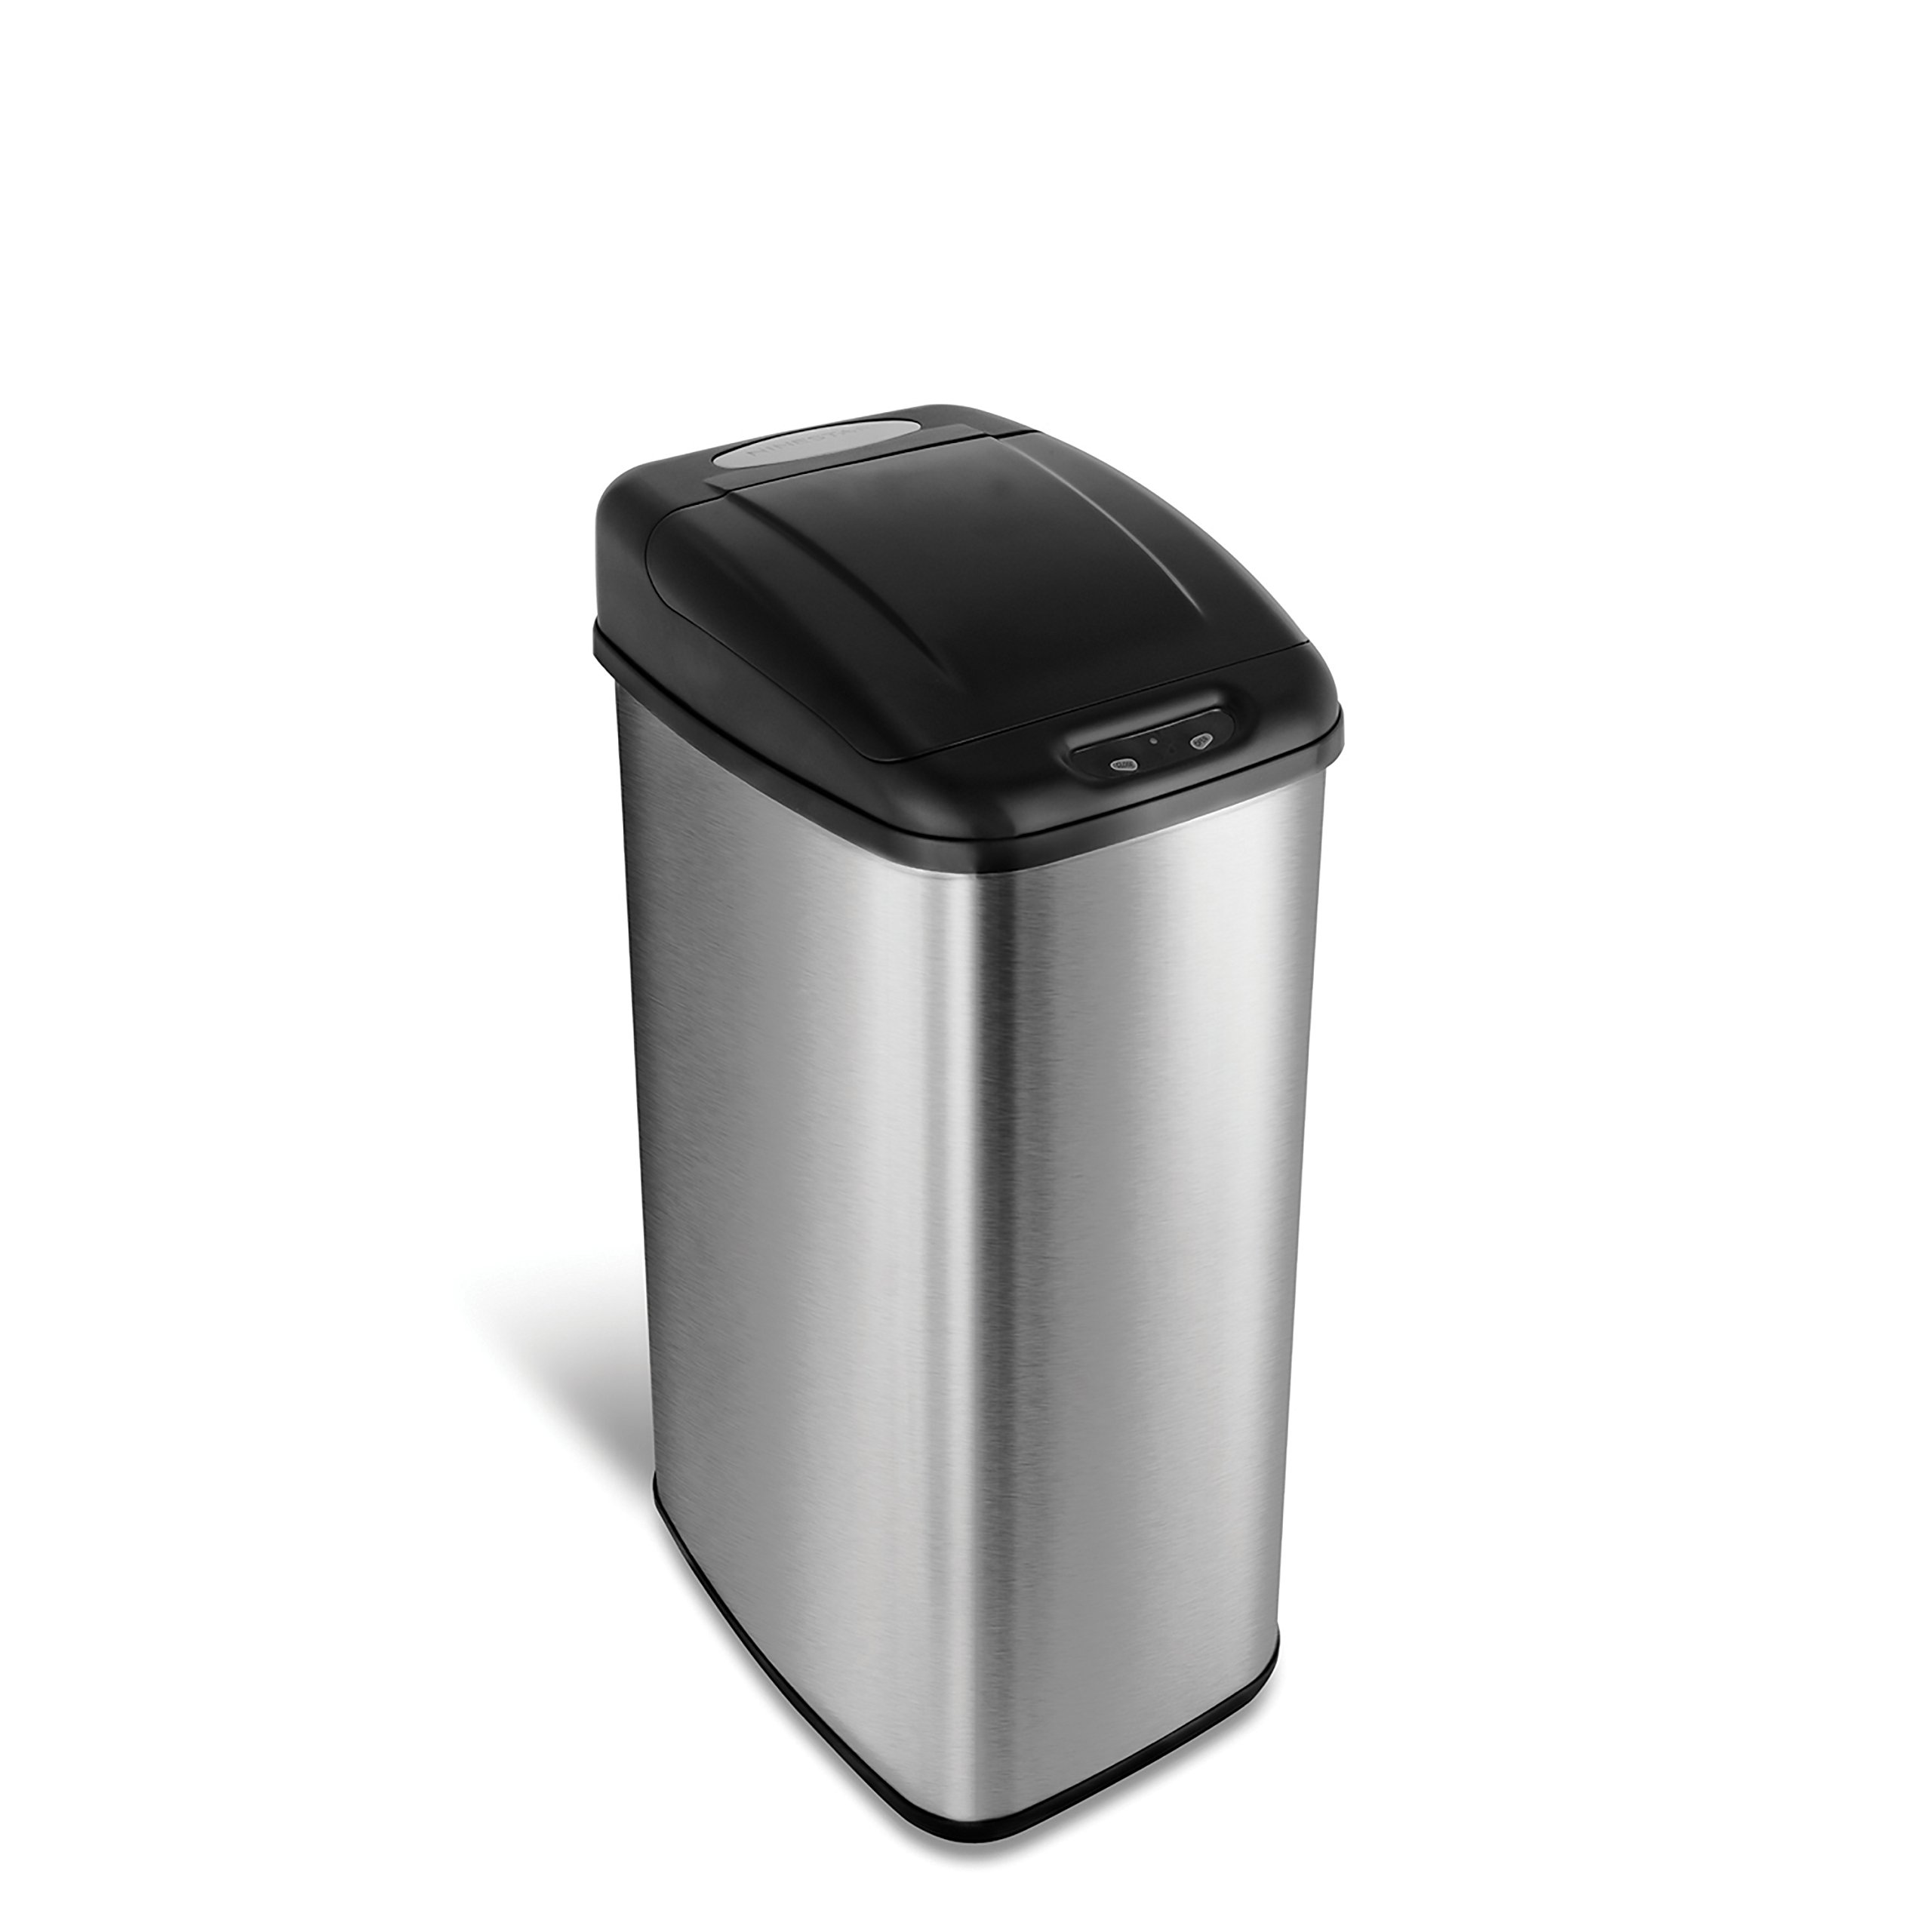 NINESTARS DZT-50-6 Automatic Touchless Infrared Motion Sensor Trash Can, 13 Gal 50L, Stainless Steel Base (Rectangular, Black Lid)